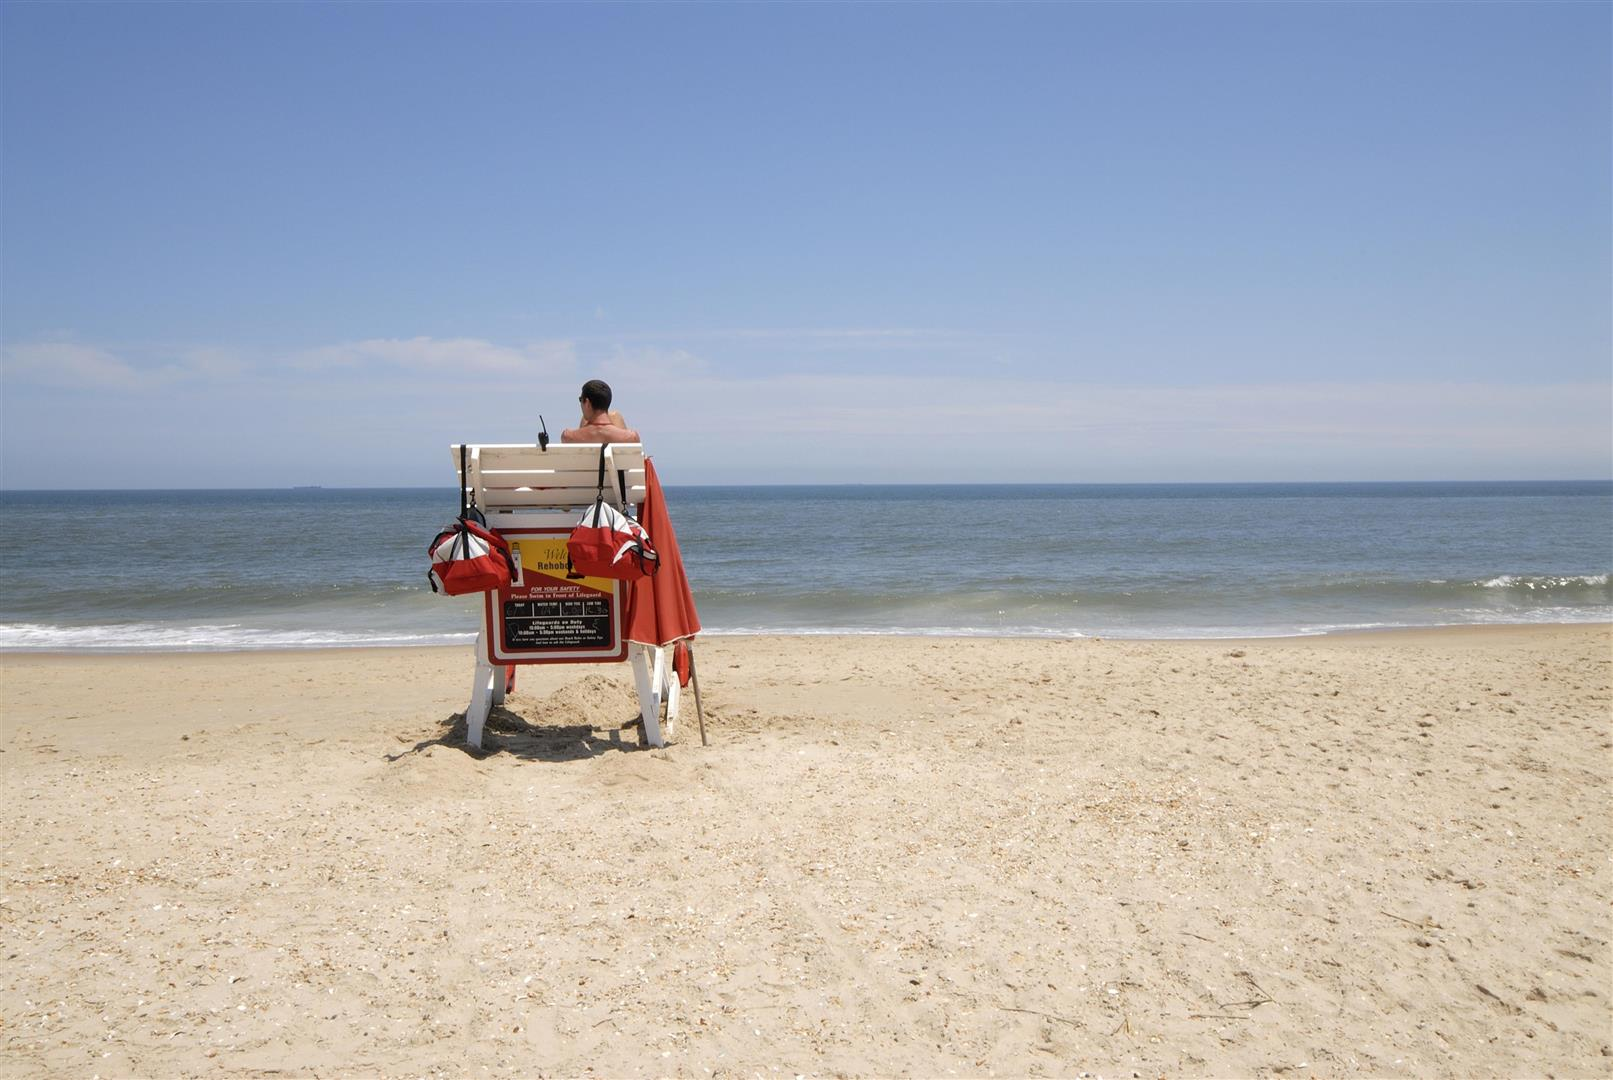 Beach-Lifeguard-Surfside-B